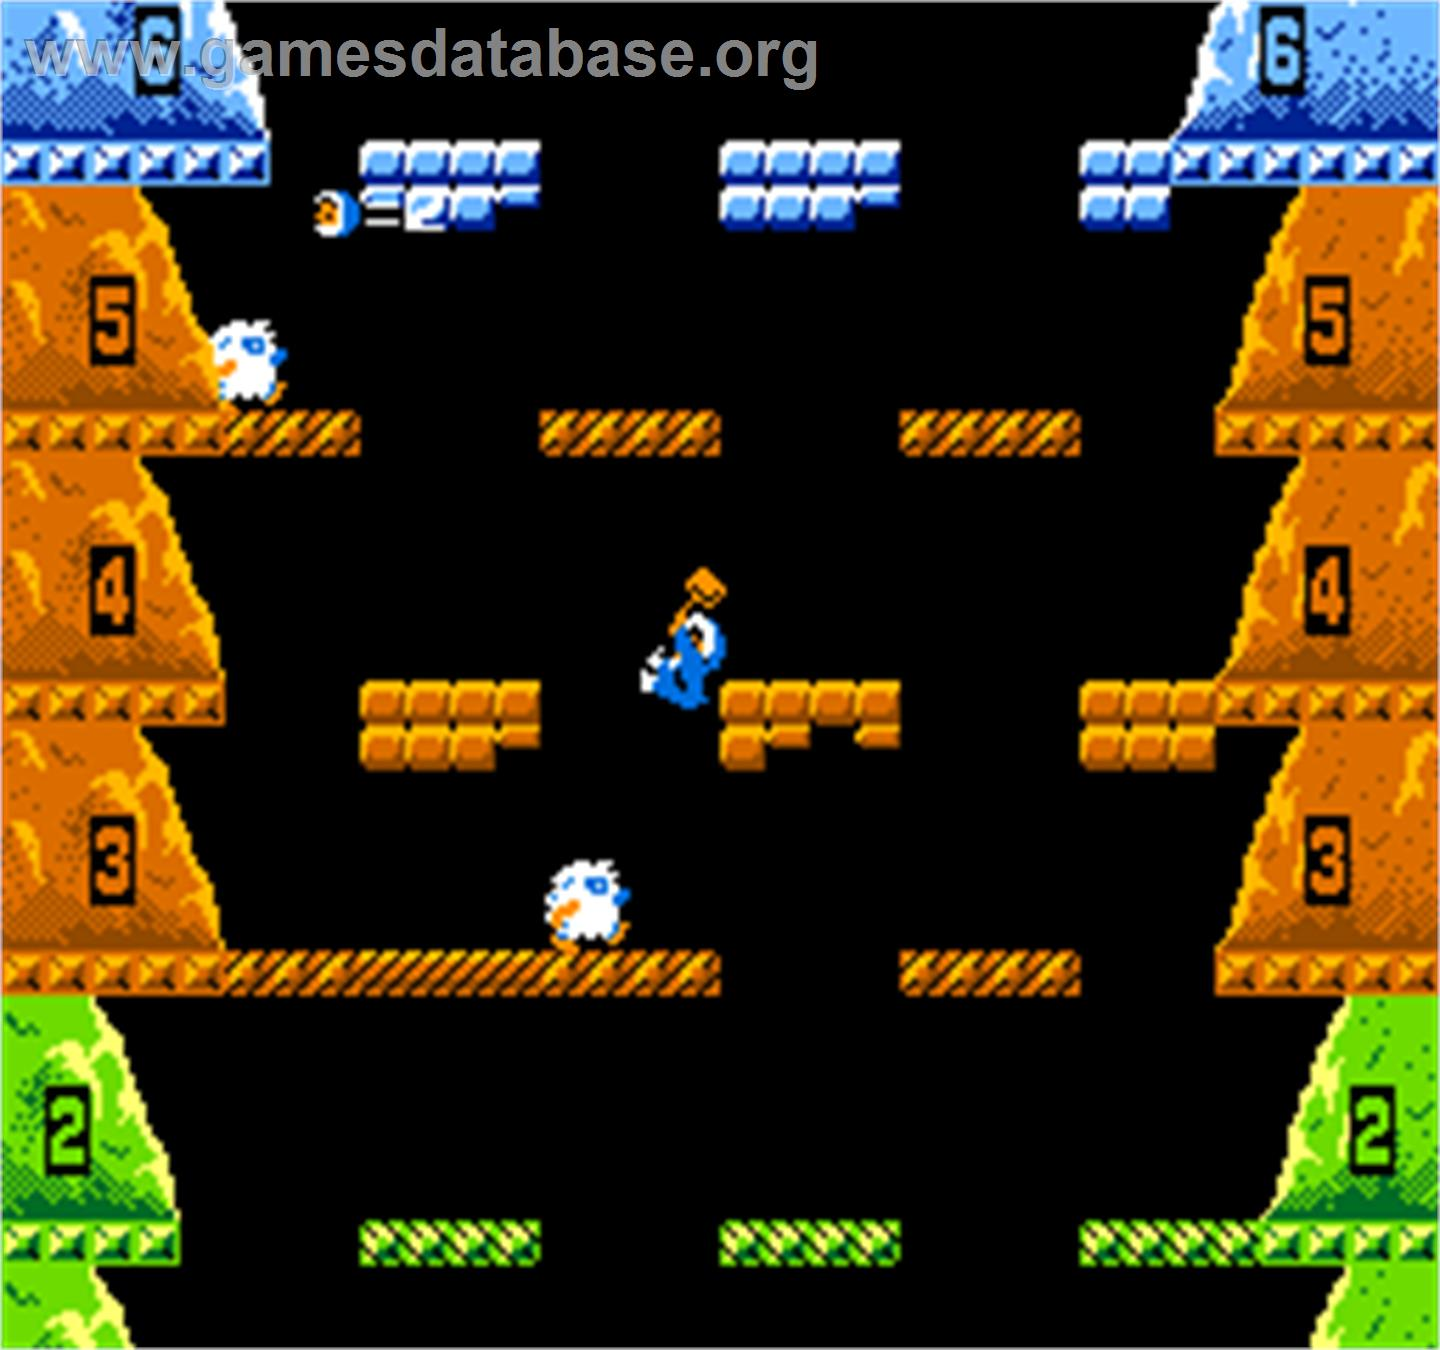 Vs. Ice Climber - Arcade - Artwork - In Game